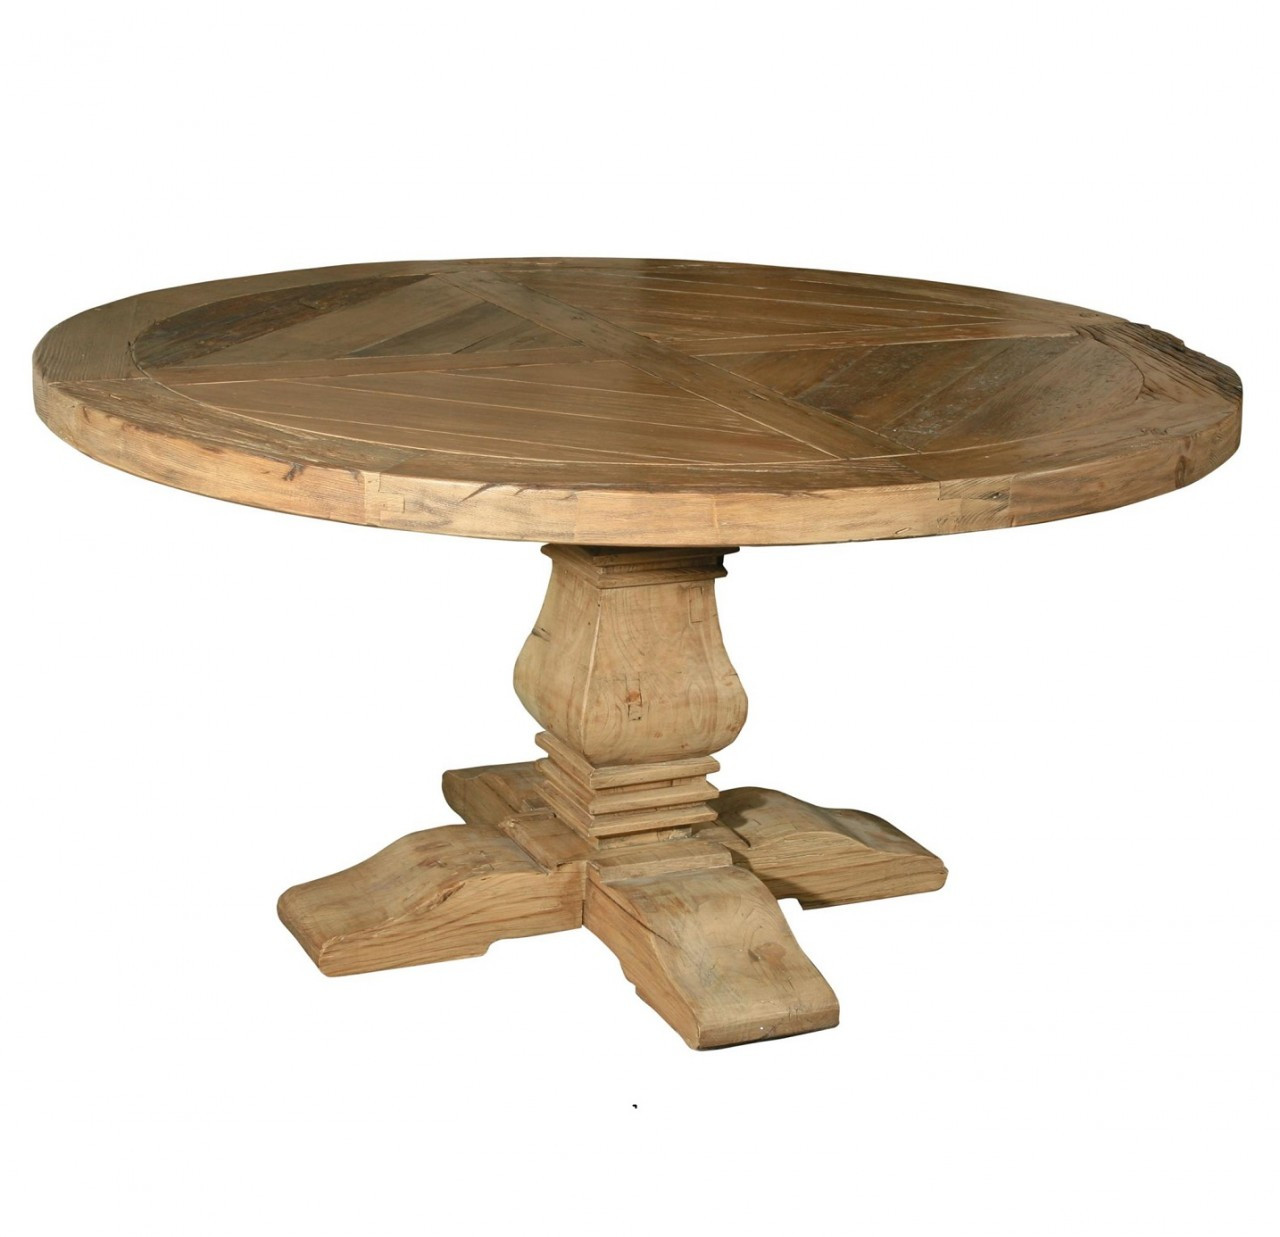 Impressive Reclaimed Wood Round Dining Table 1280 x 1237 · 126 kB · jpeg